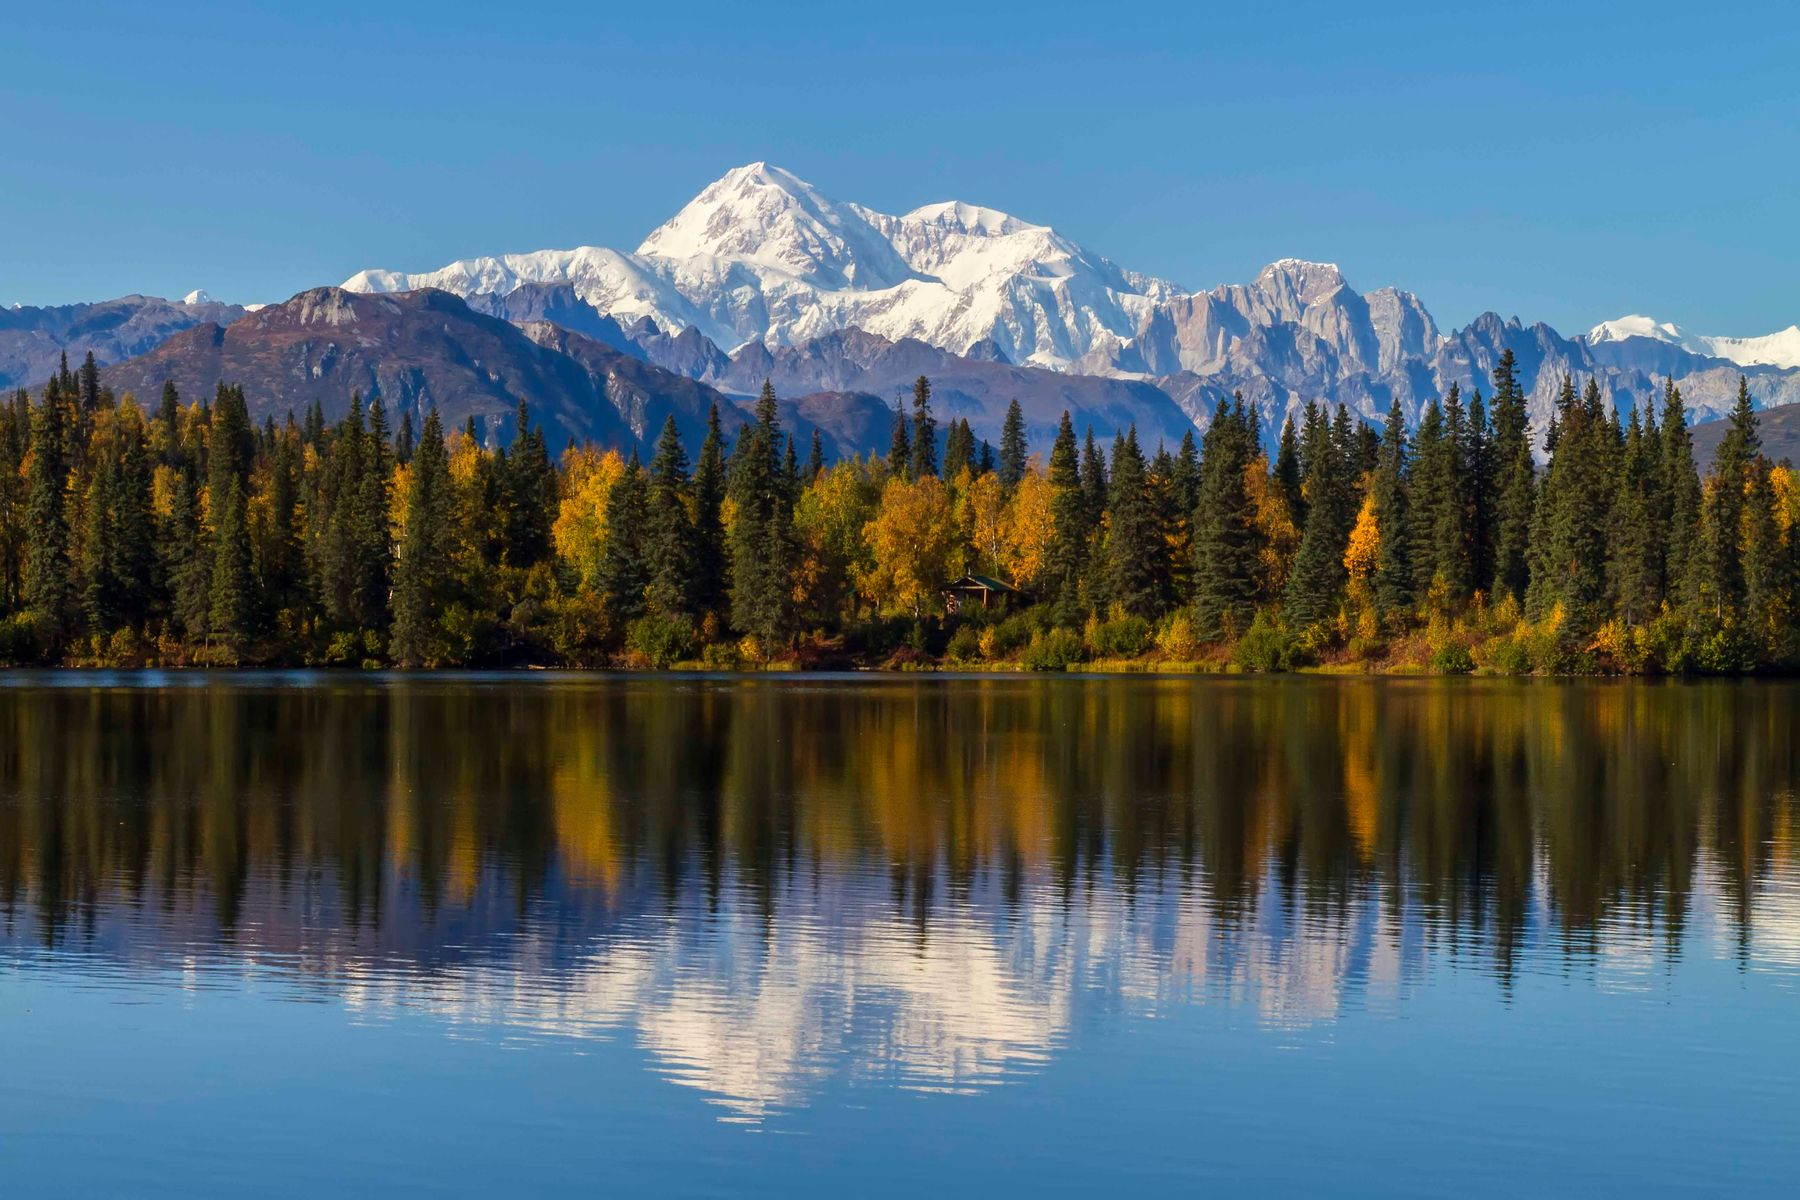 reflection of mountain in water